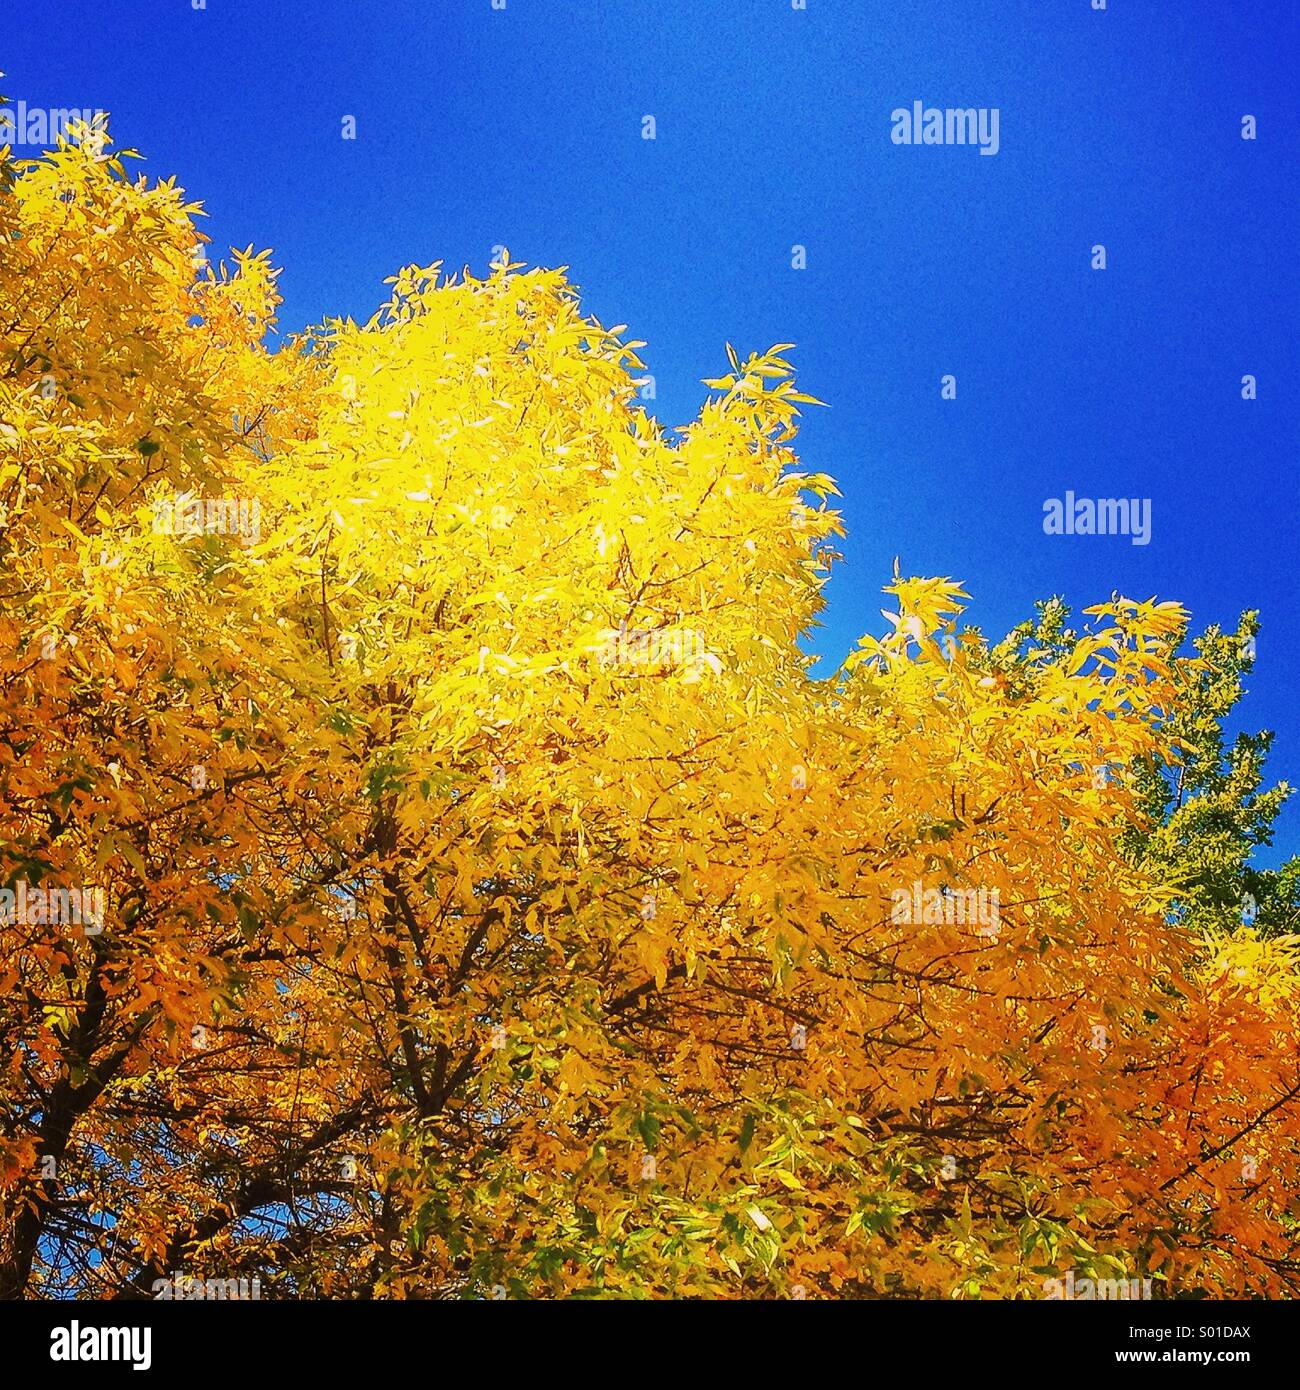 Brilliant autumn leaves against blue sky - Stock Image